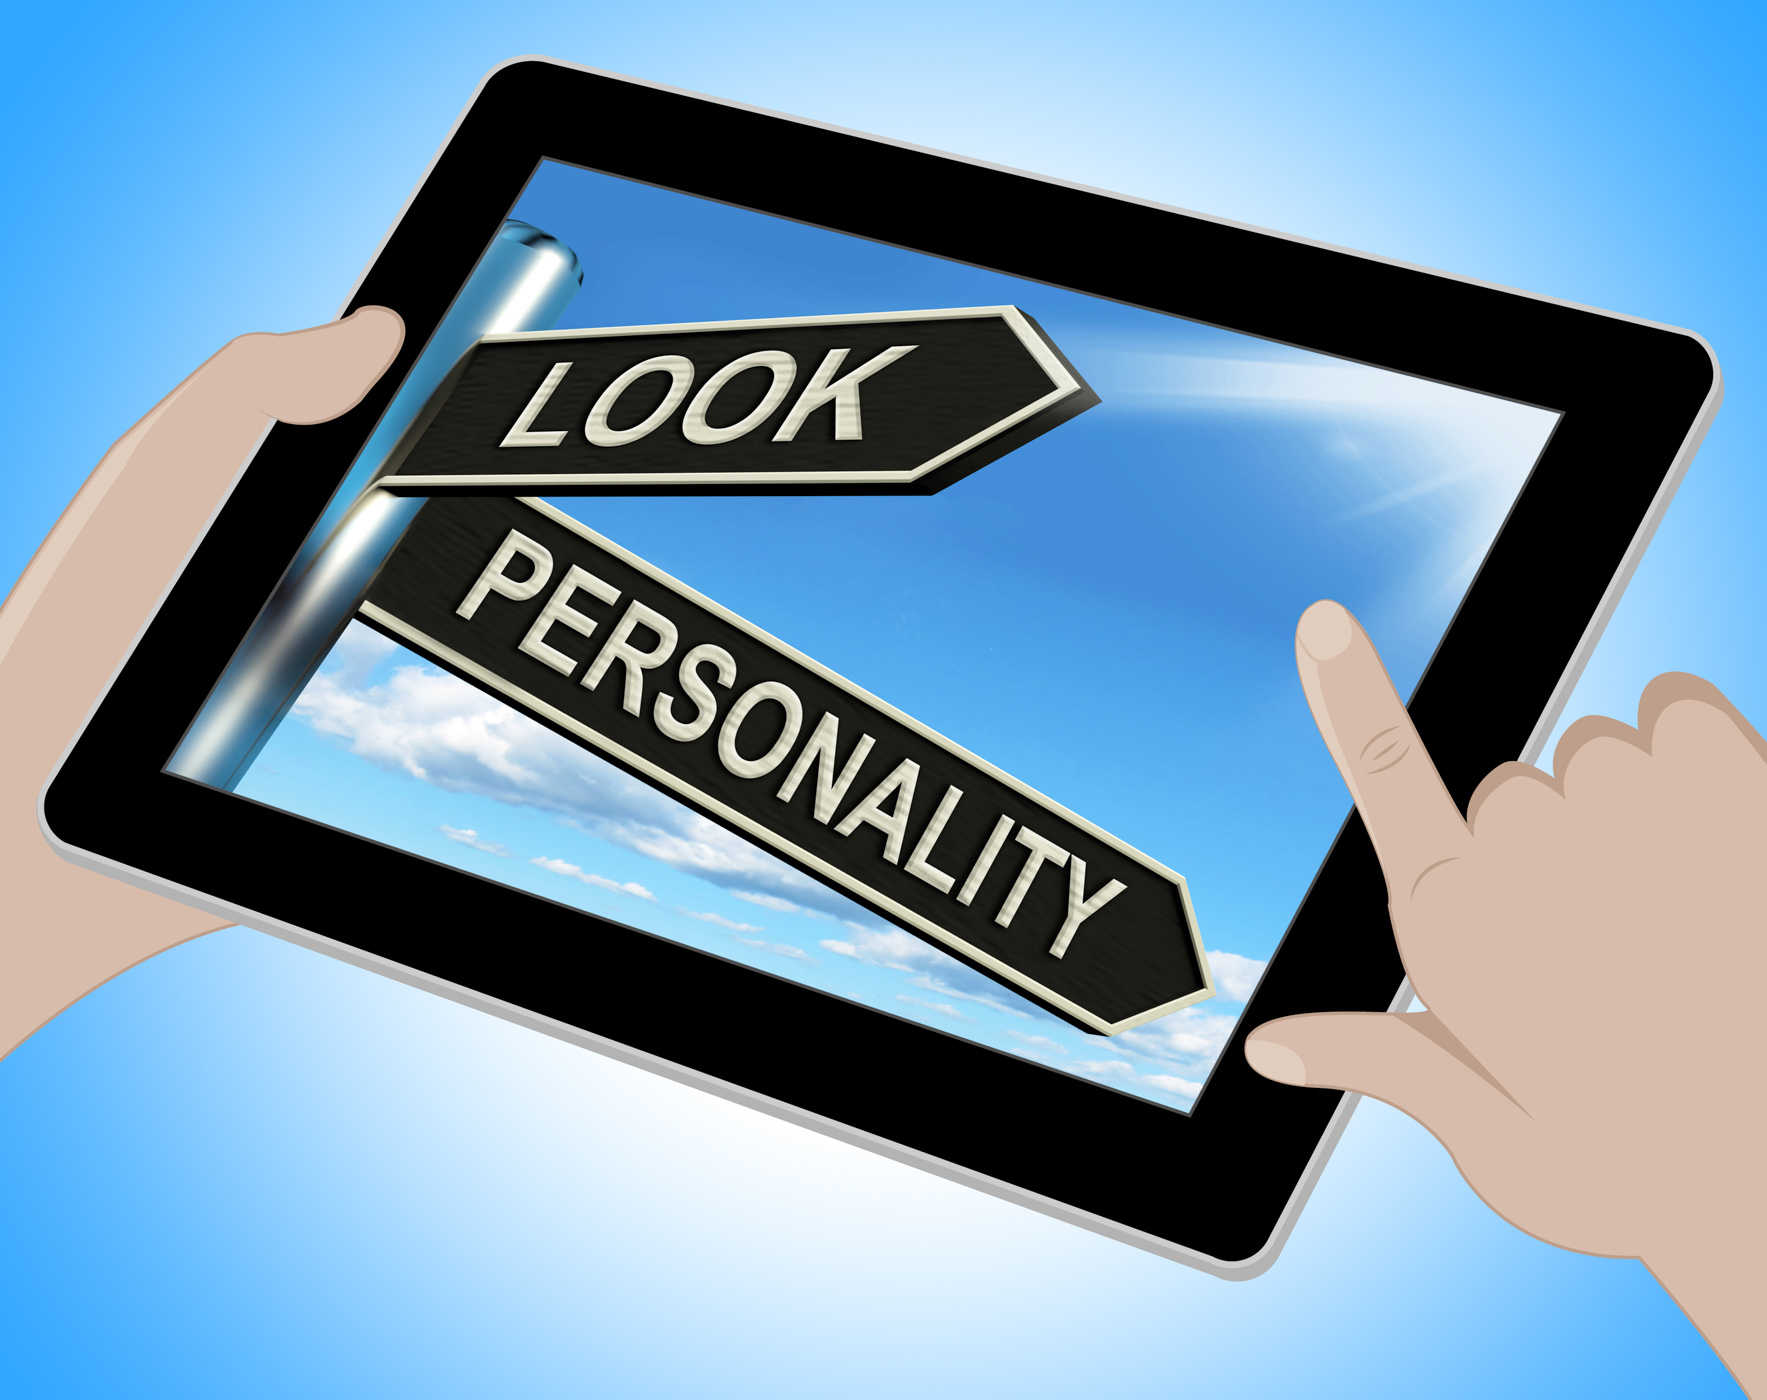 Look Personality Tablet Shows Appearance And Character, Appear, Appearance, Attitude, Beauty, HQ Photo